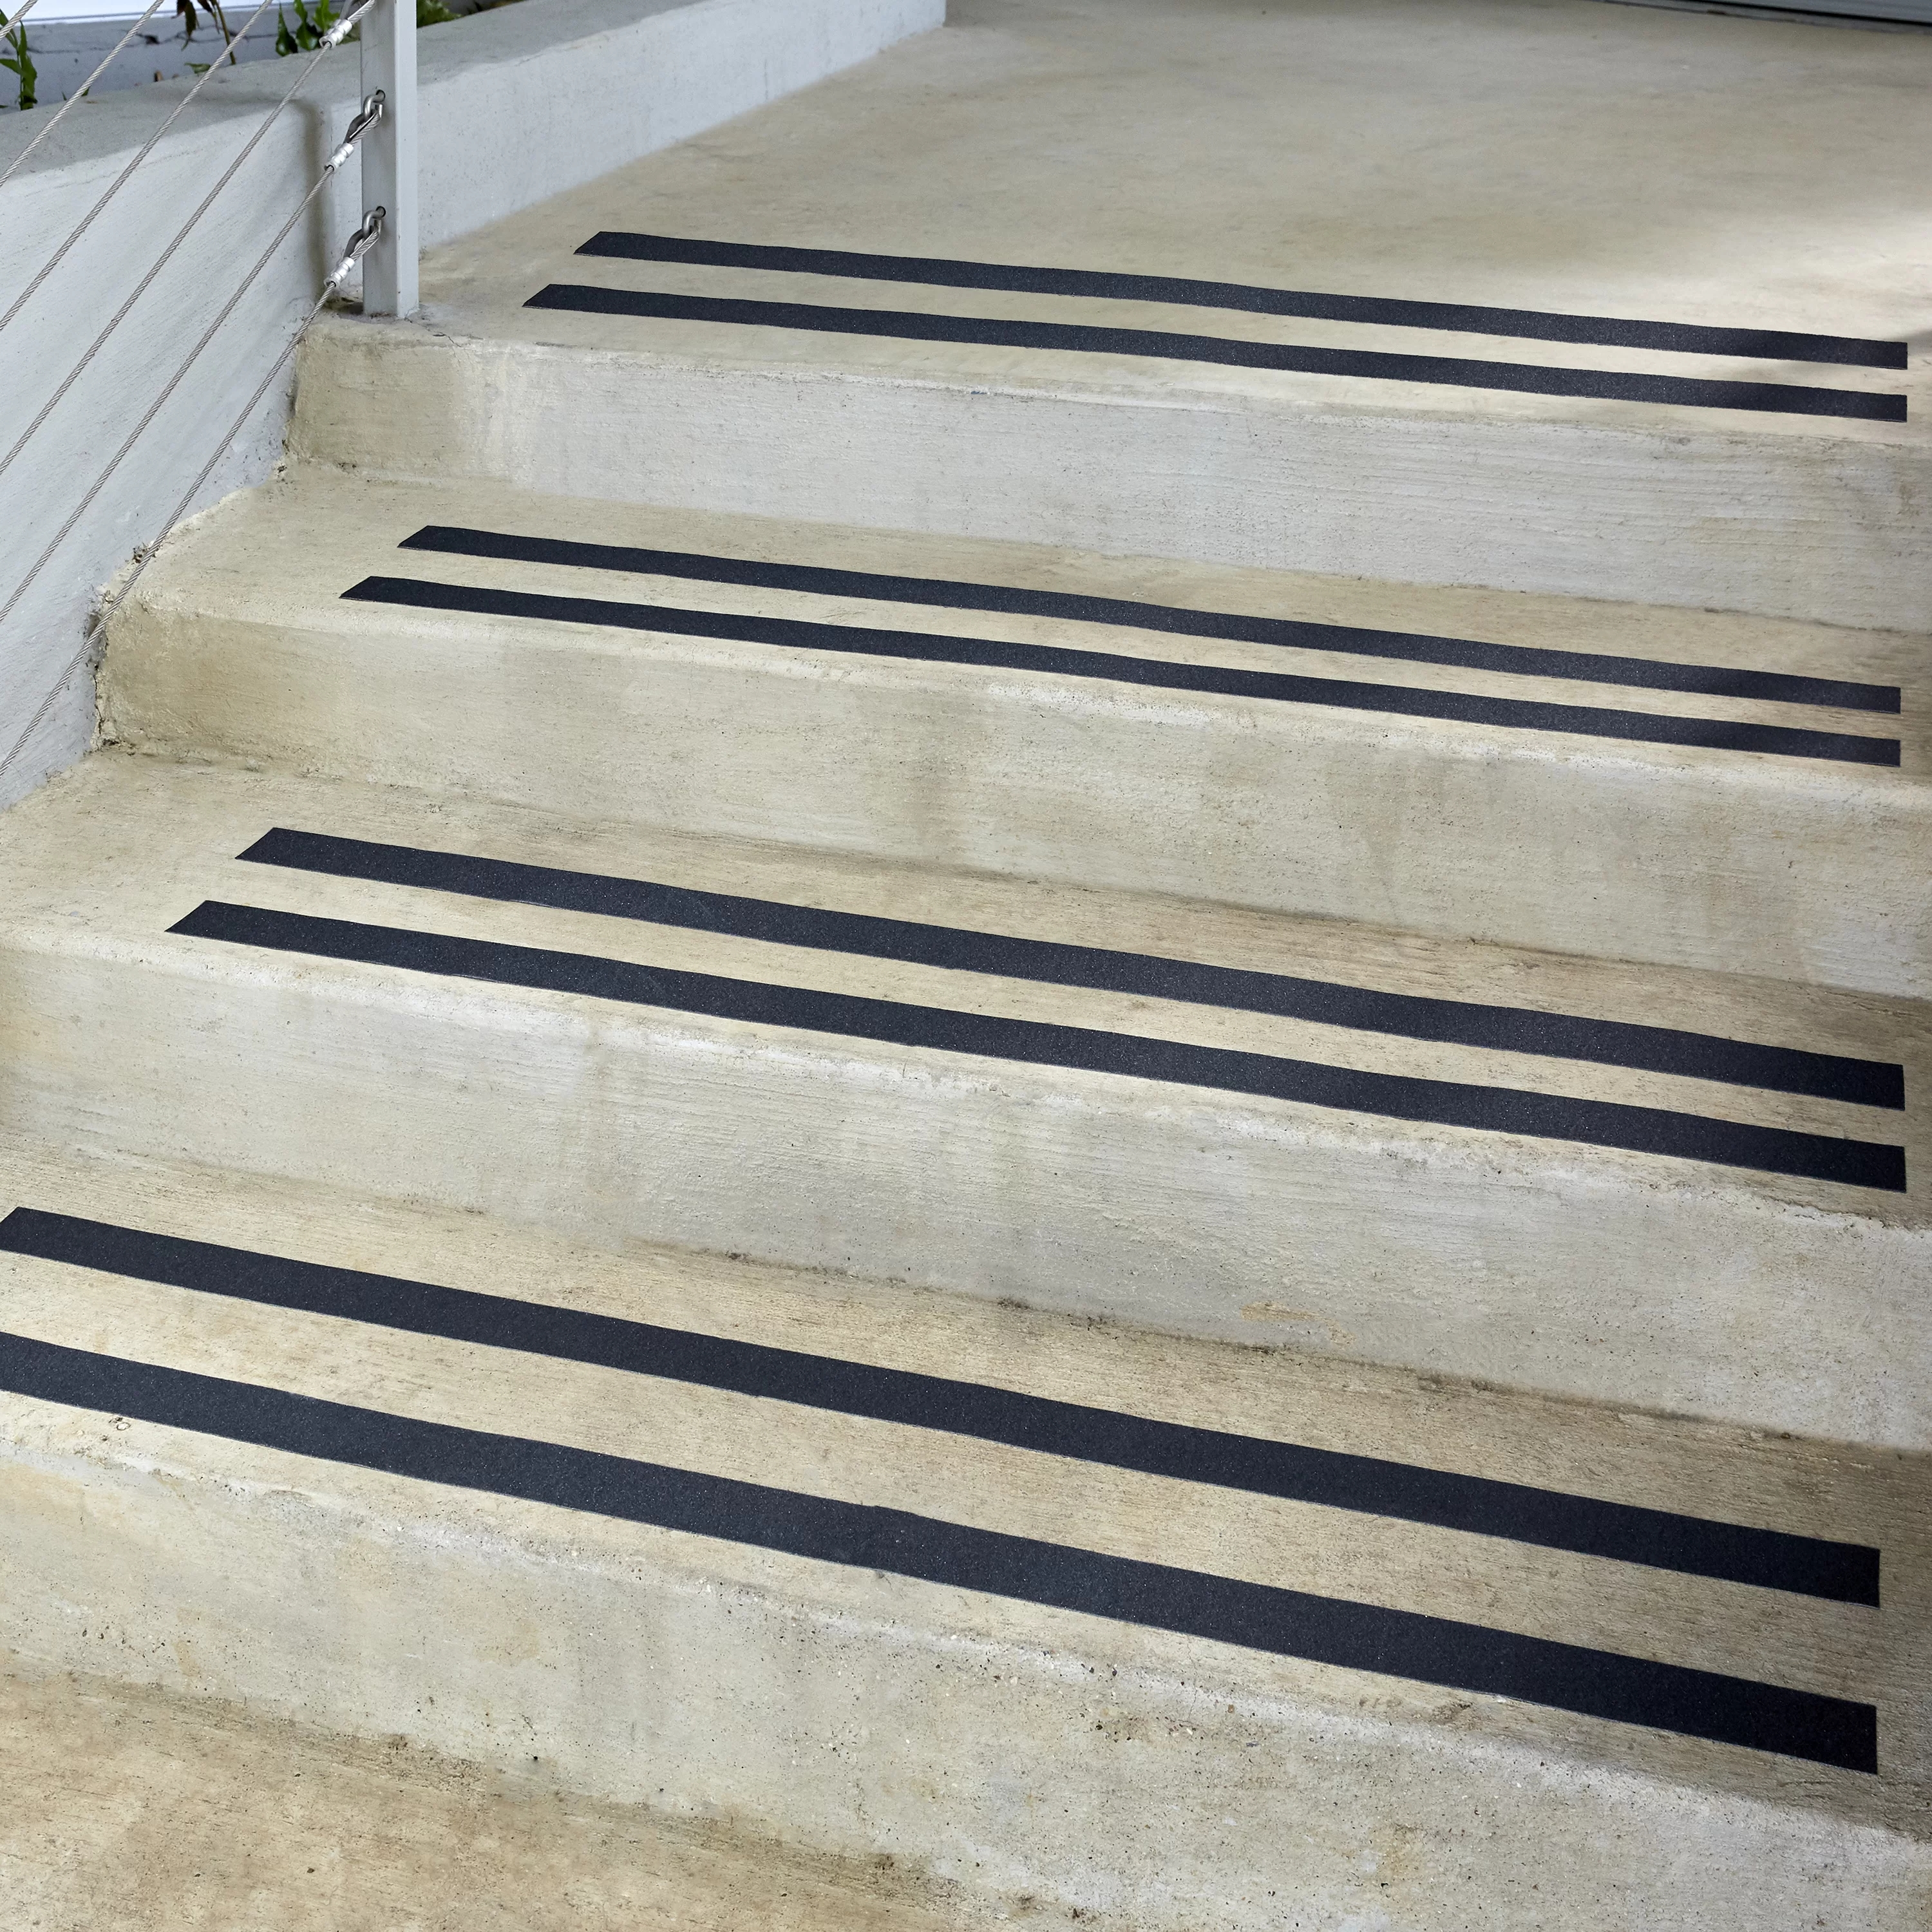 Mohawk Home Gripper Tape Gray Stair Tread Reviews Wayfair | Grey Wood Stair Treads | Coloured | Marble | Low Cost | Gray Color | Porcelain